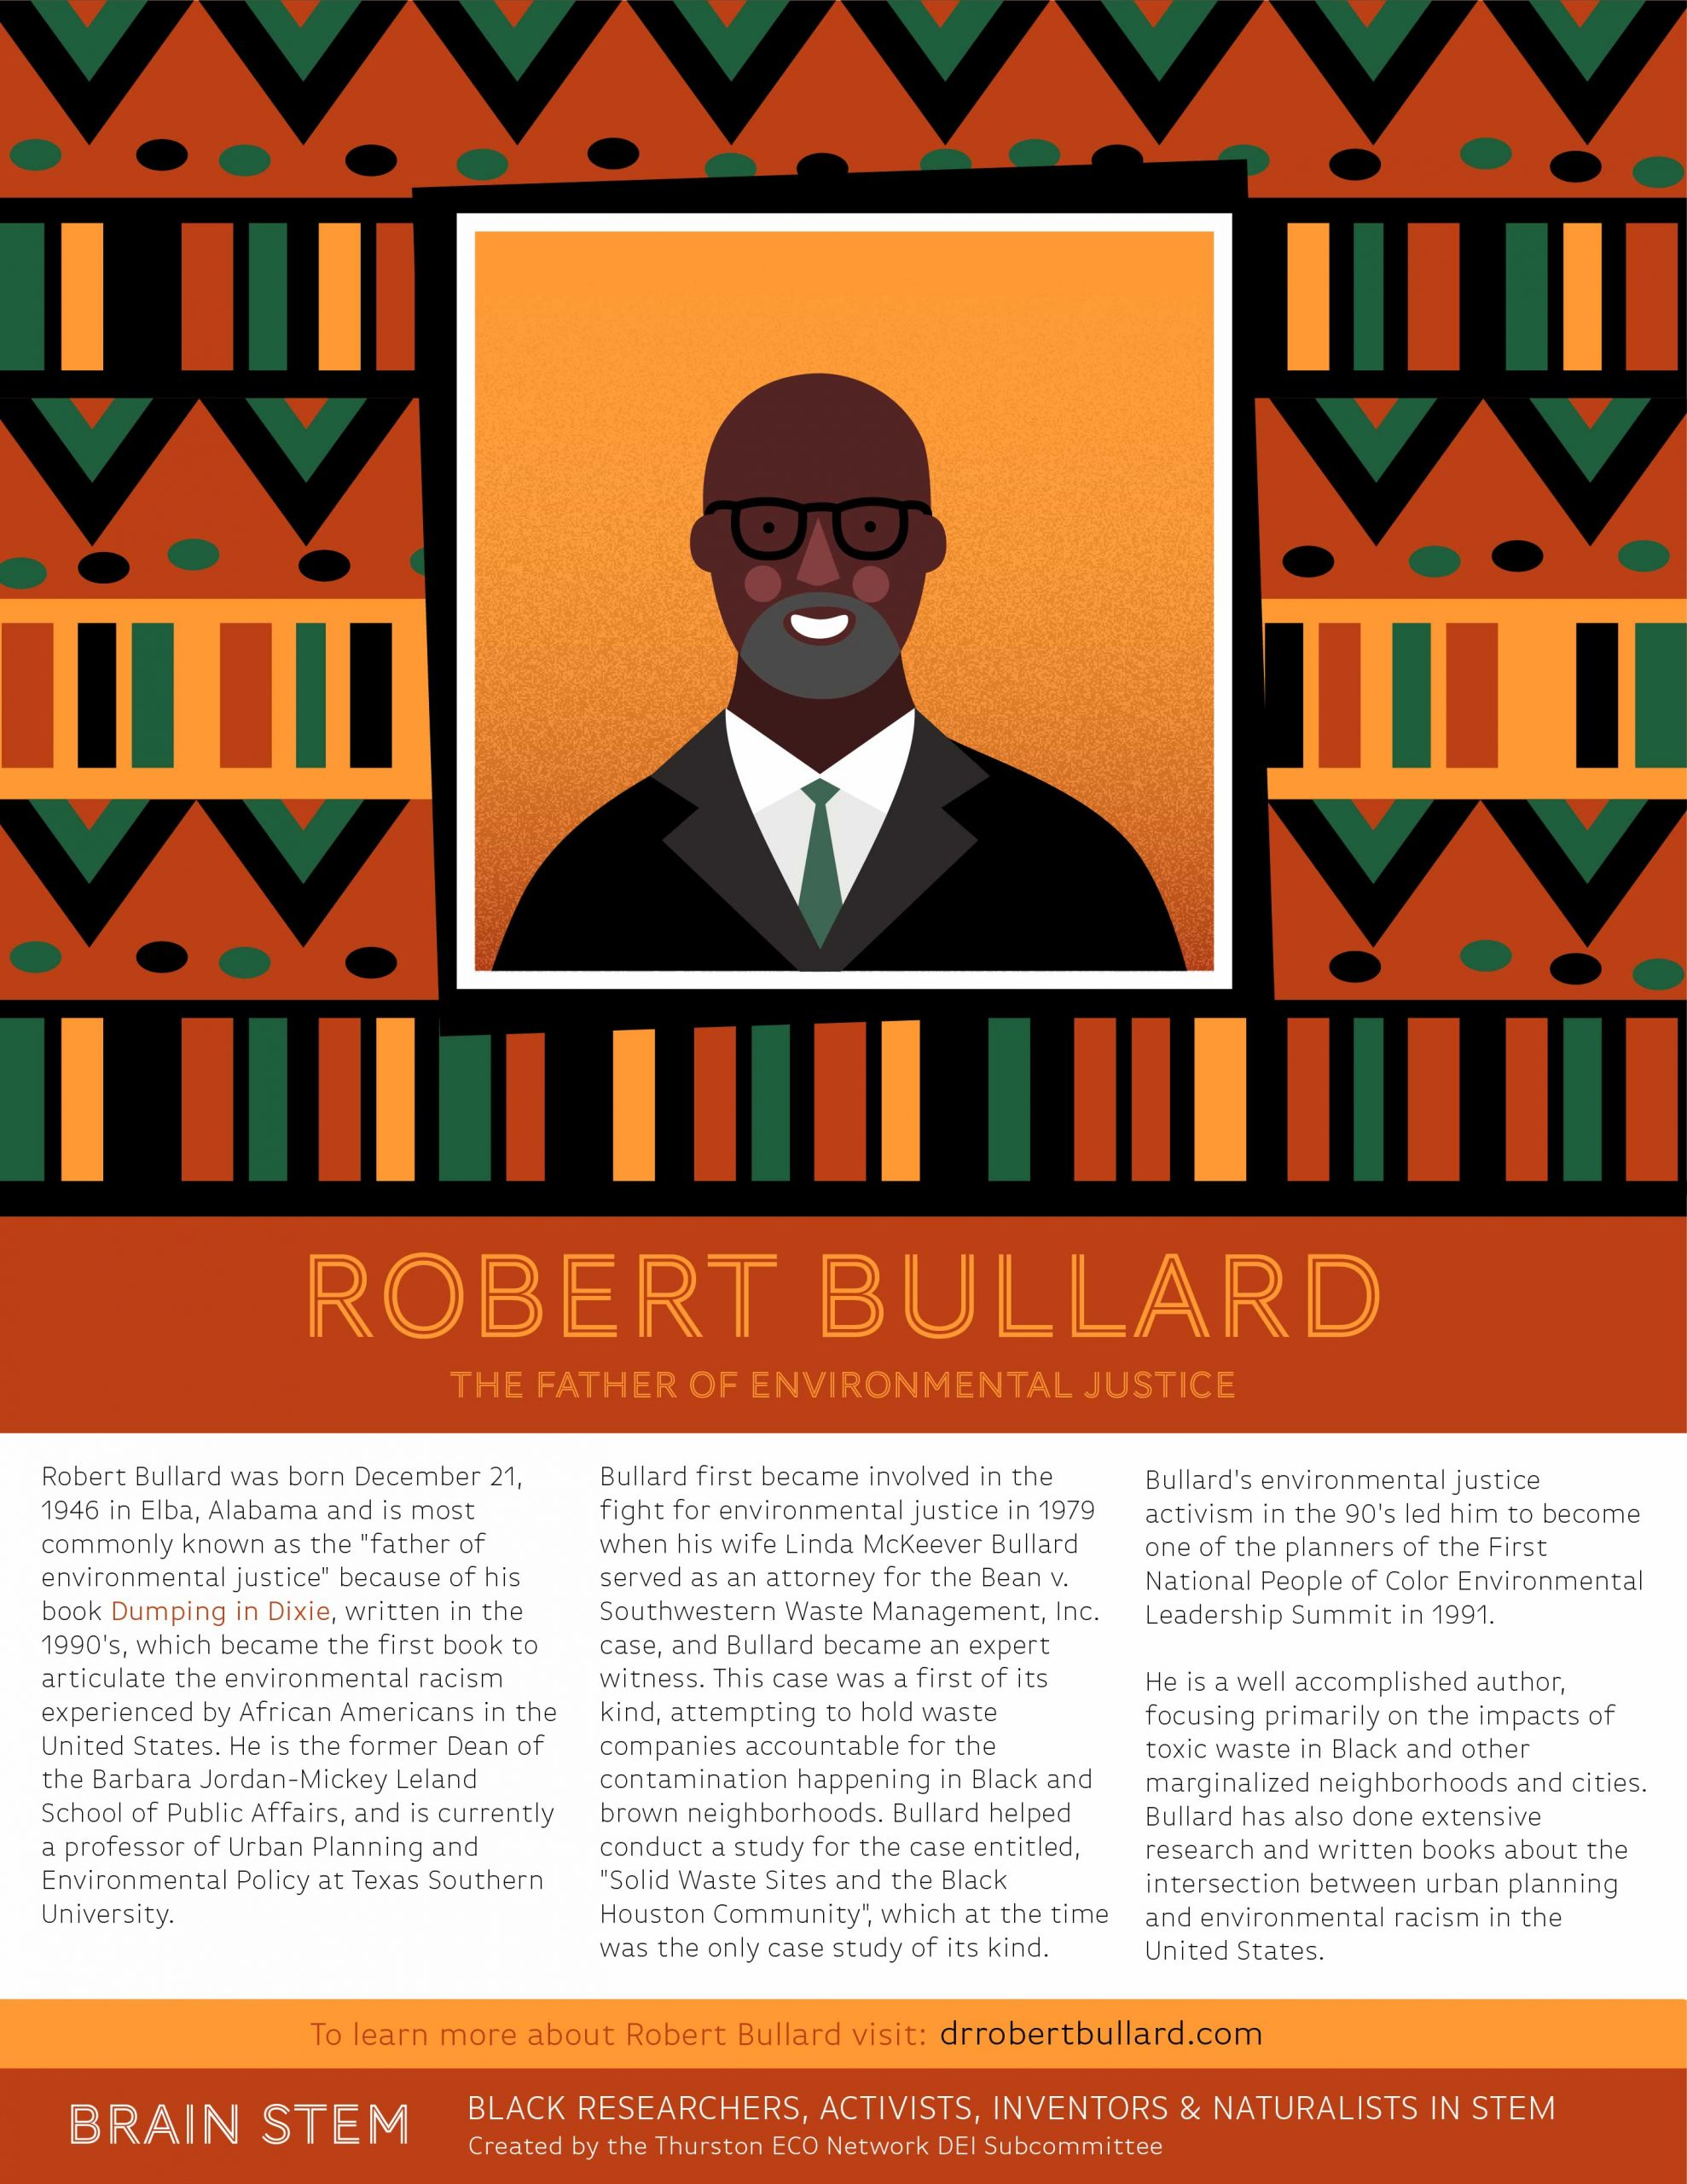 black history month BRAIN STEM bullard